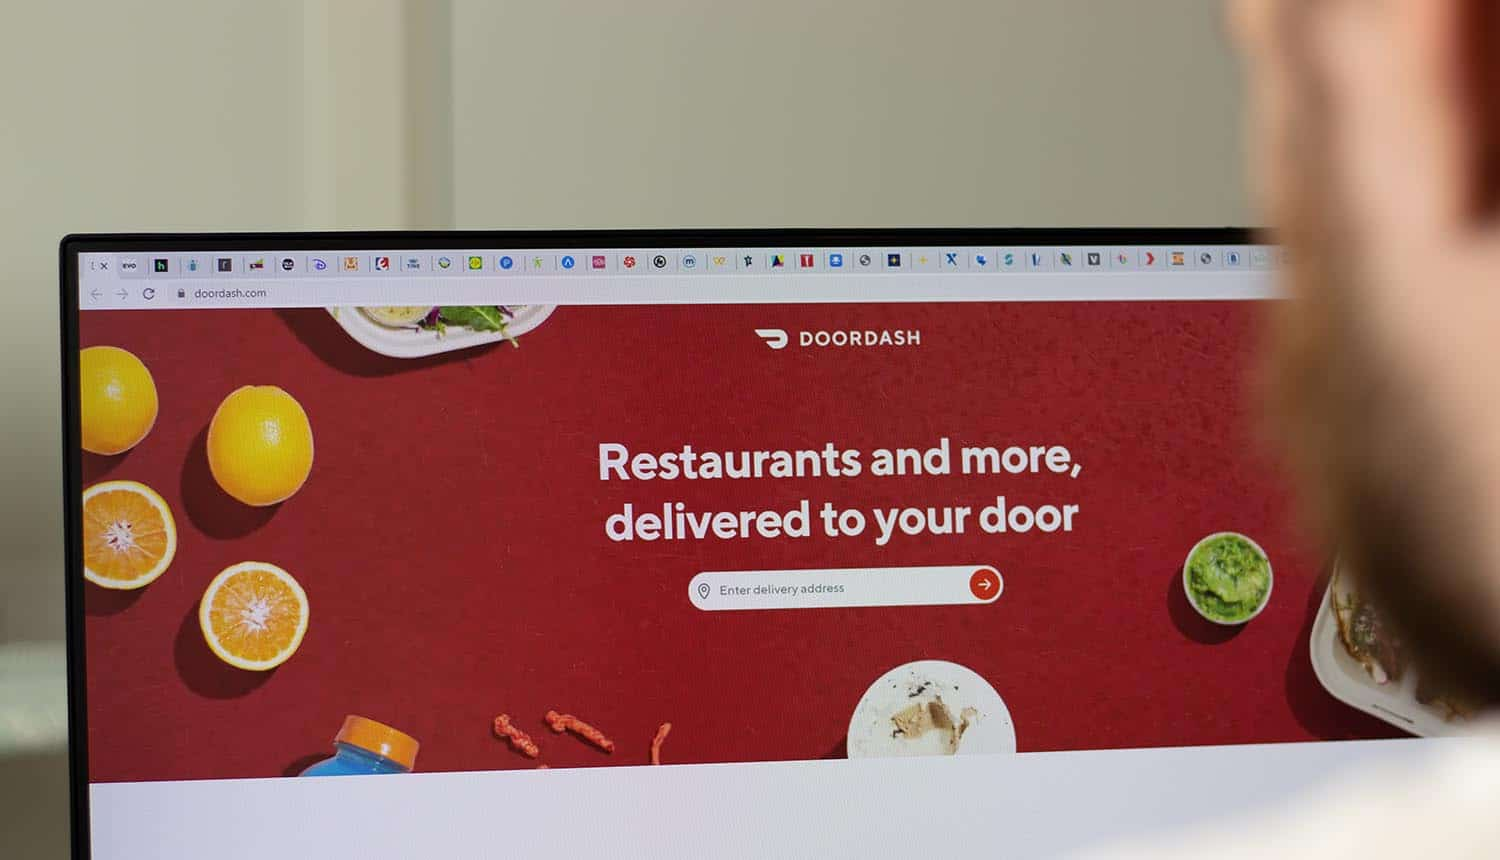 Doordash company website on screen showing data sharing by food delivery platforms